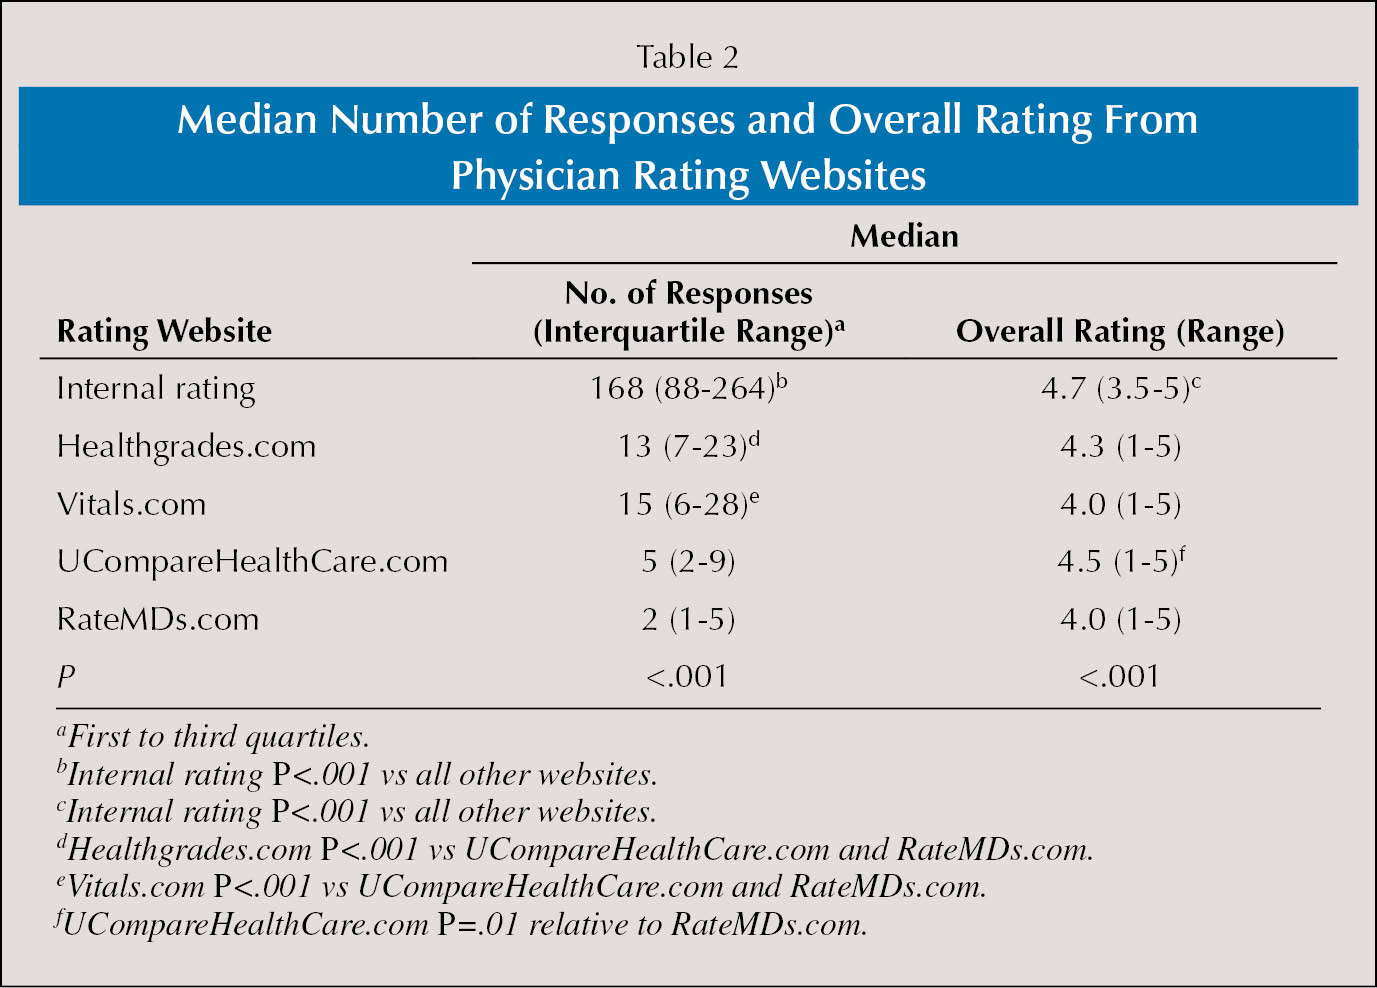 Median Number of Responses and Overall Rating From Physician Rating Websites